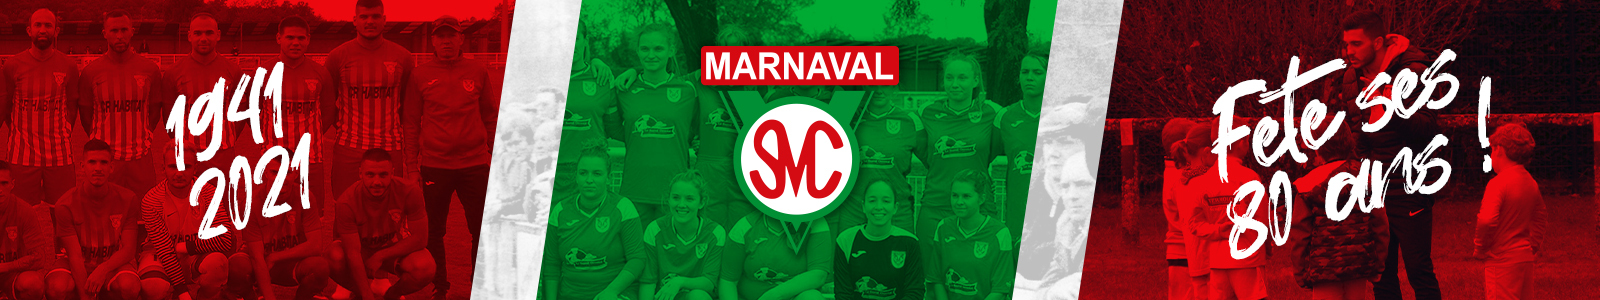 SPORTING MARNAVAL CLUB : site officiel du club de foot de ST DIZIER - footeo